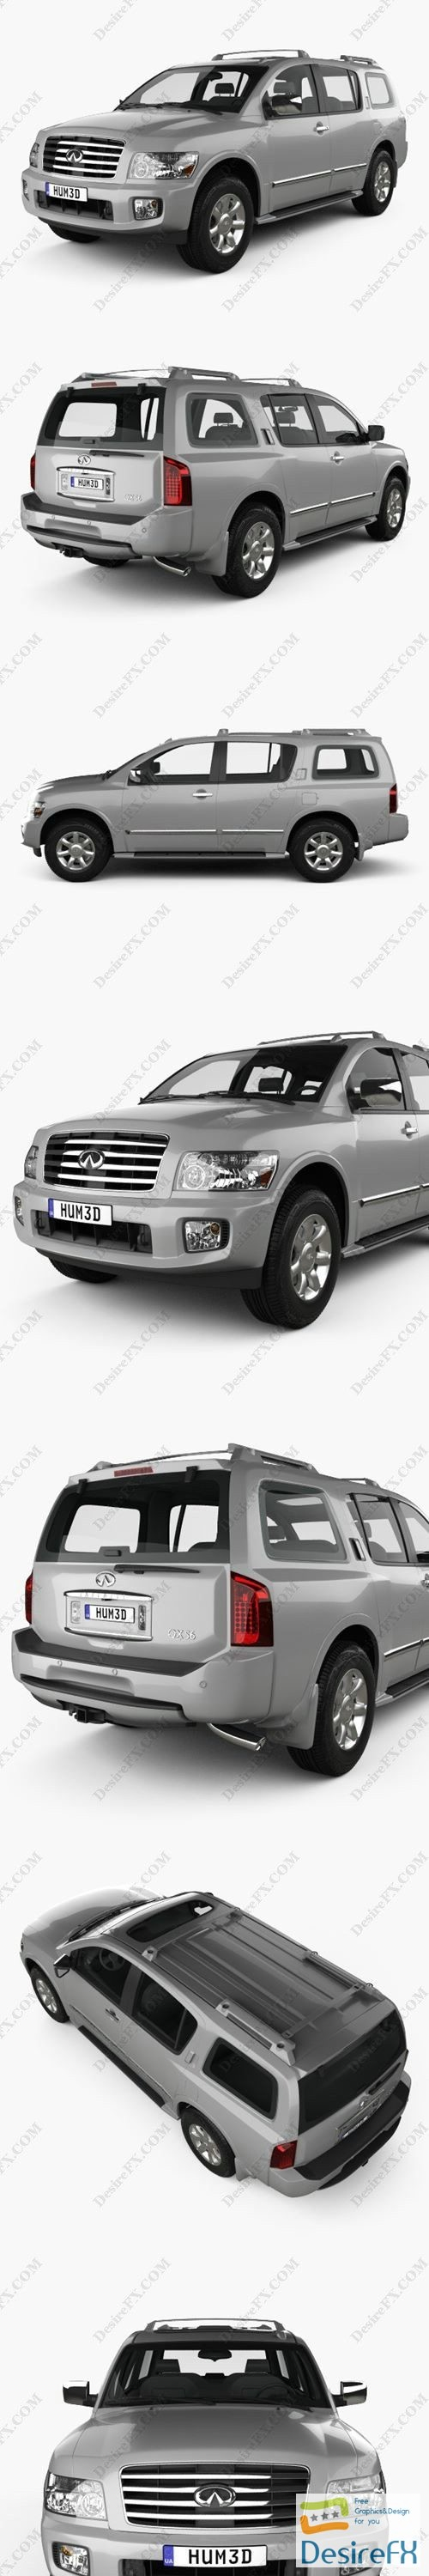 3d-models - Infiniti QX56 JA60 2004 3D Model